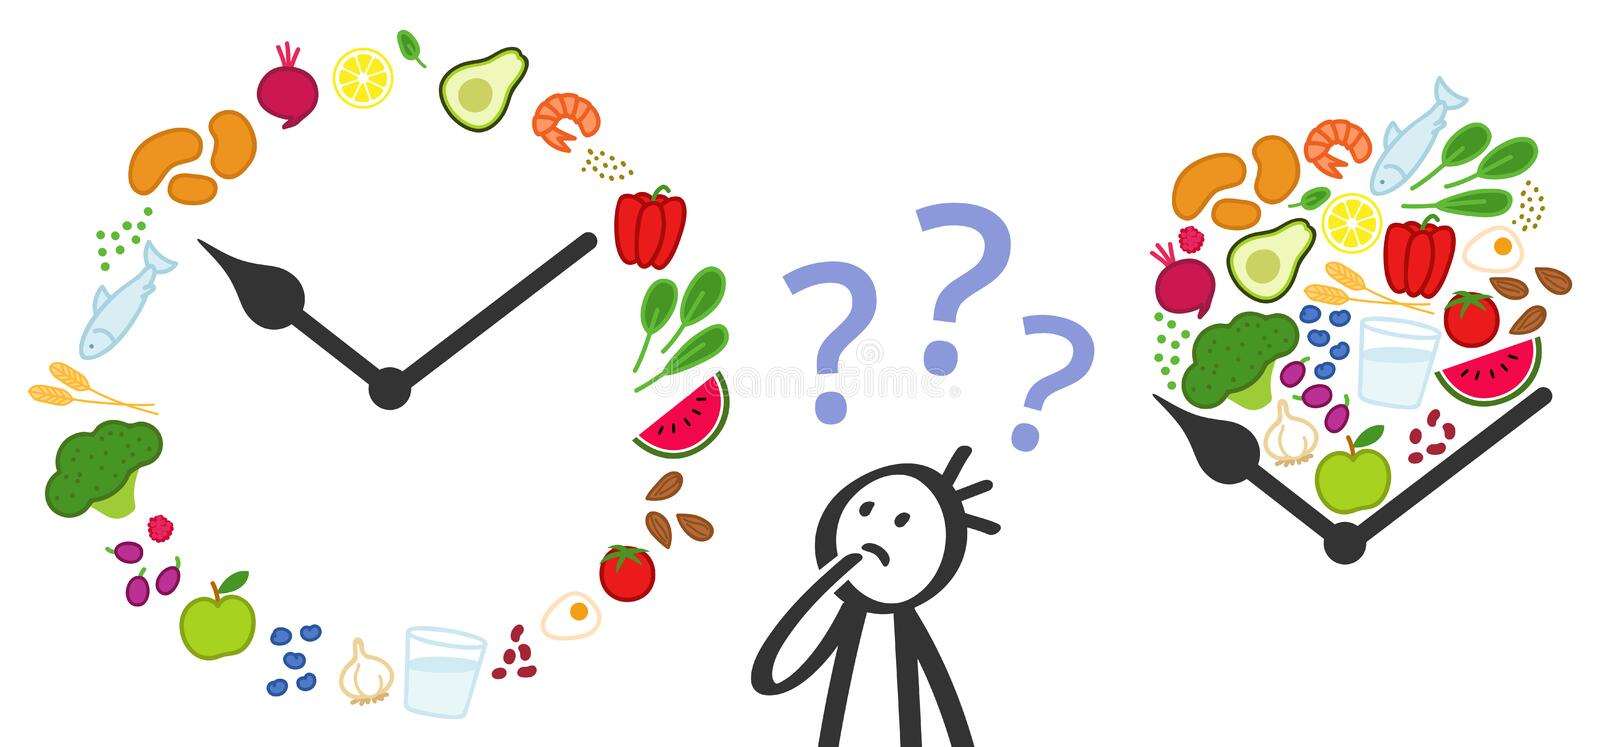 When to eat, intermittent fasting, time-restricted eating. Healthy foods in a circle, clock hands, stick figure, questions vector illustration